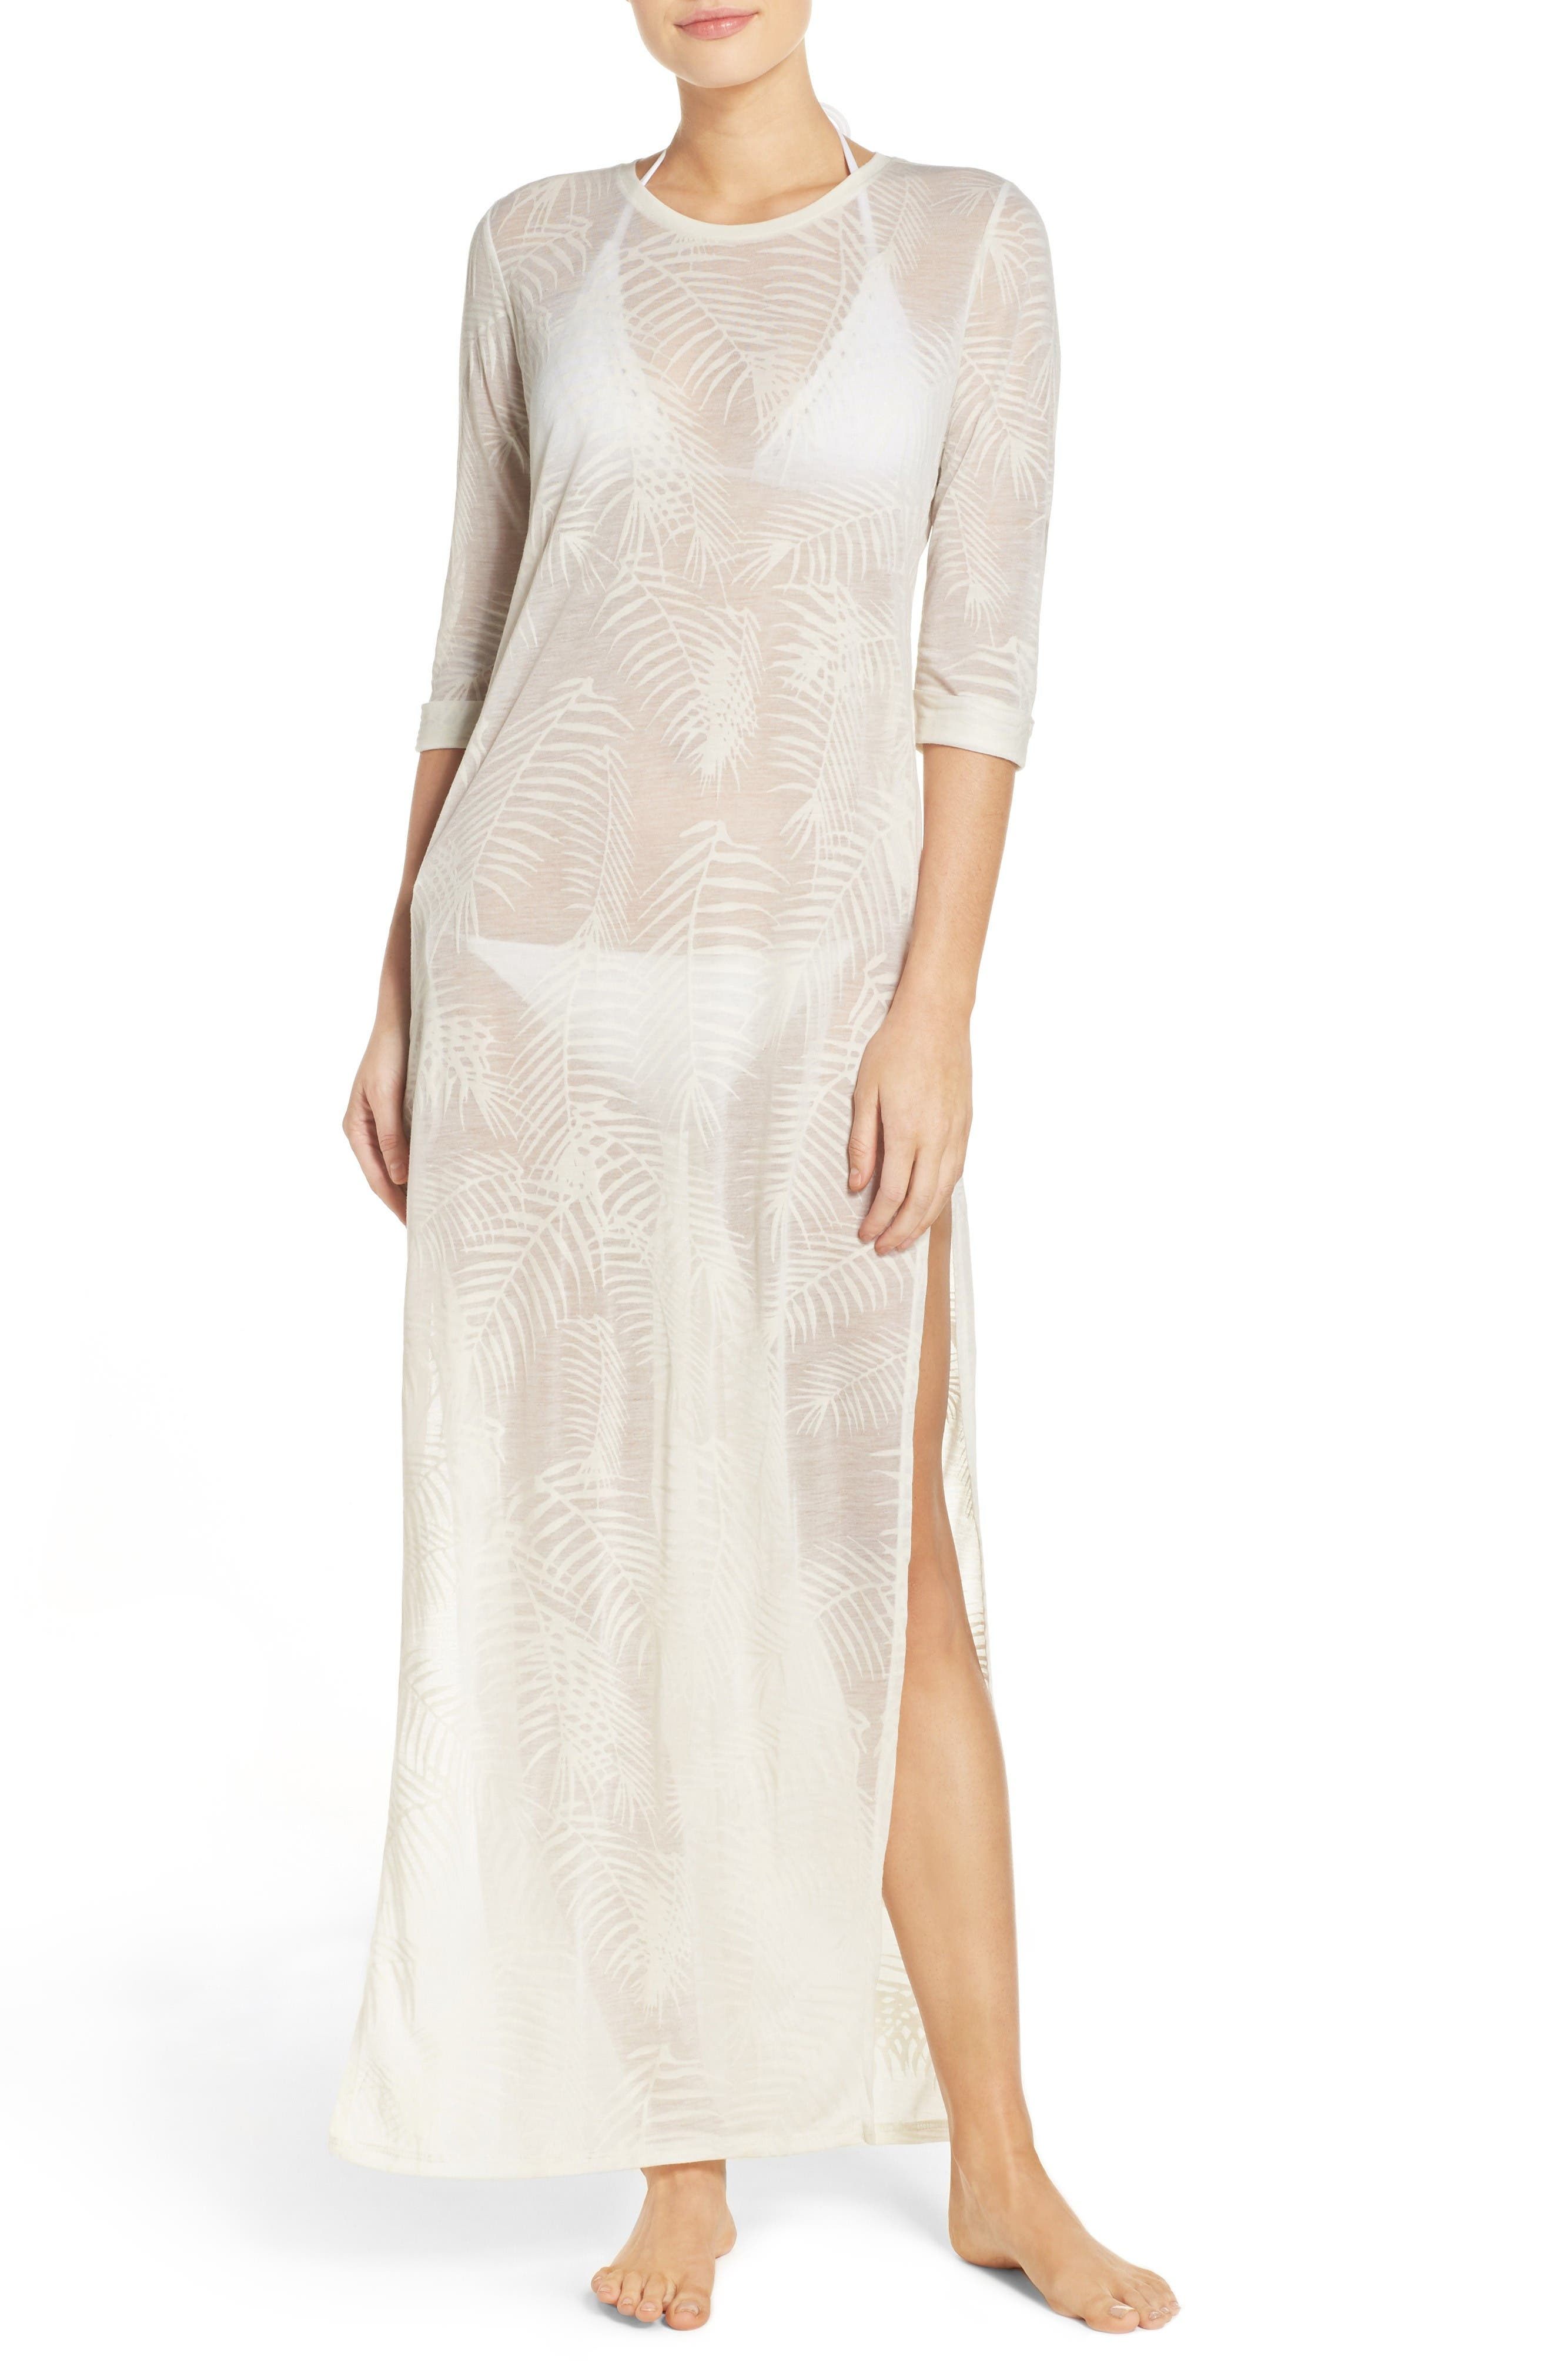 Finley Cover-Up Maxi Dress,                             Main thumbnail 1, color,                             White